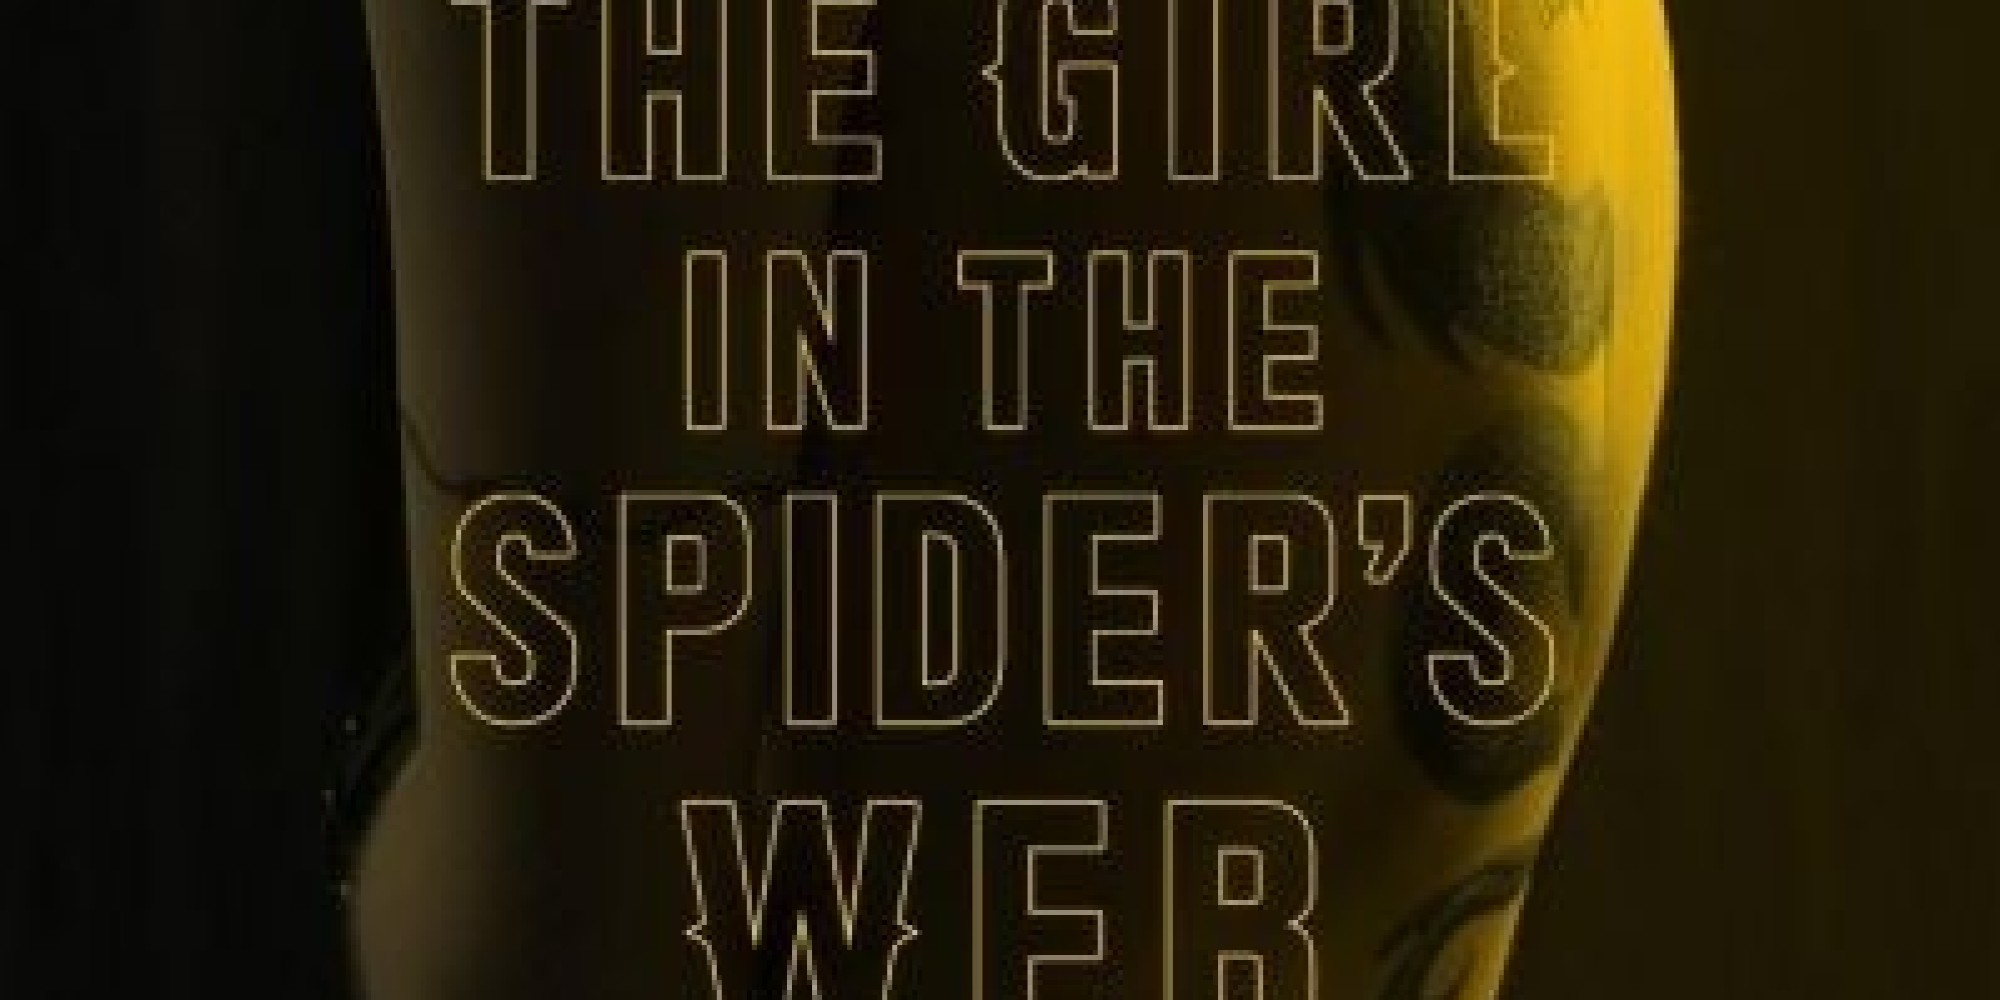 New dragon tattoo book 39 the girl in the spider 39 s web 39 to for Dragon tattoo book